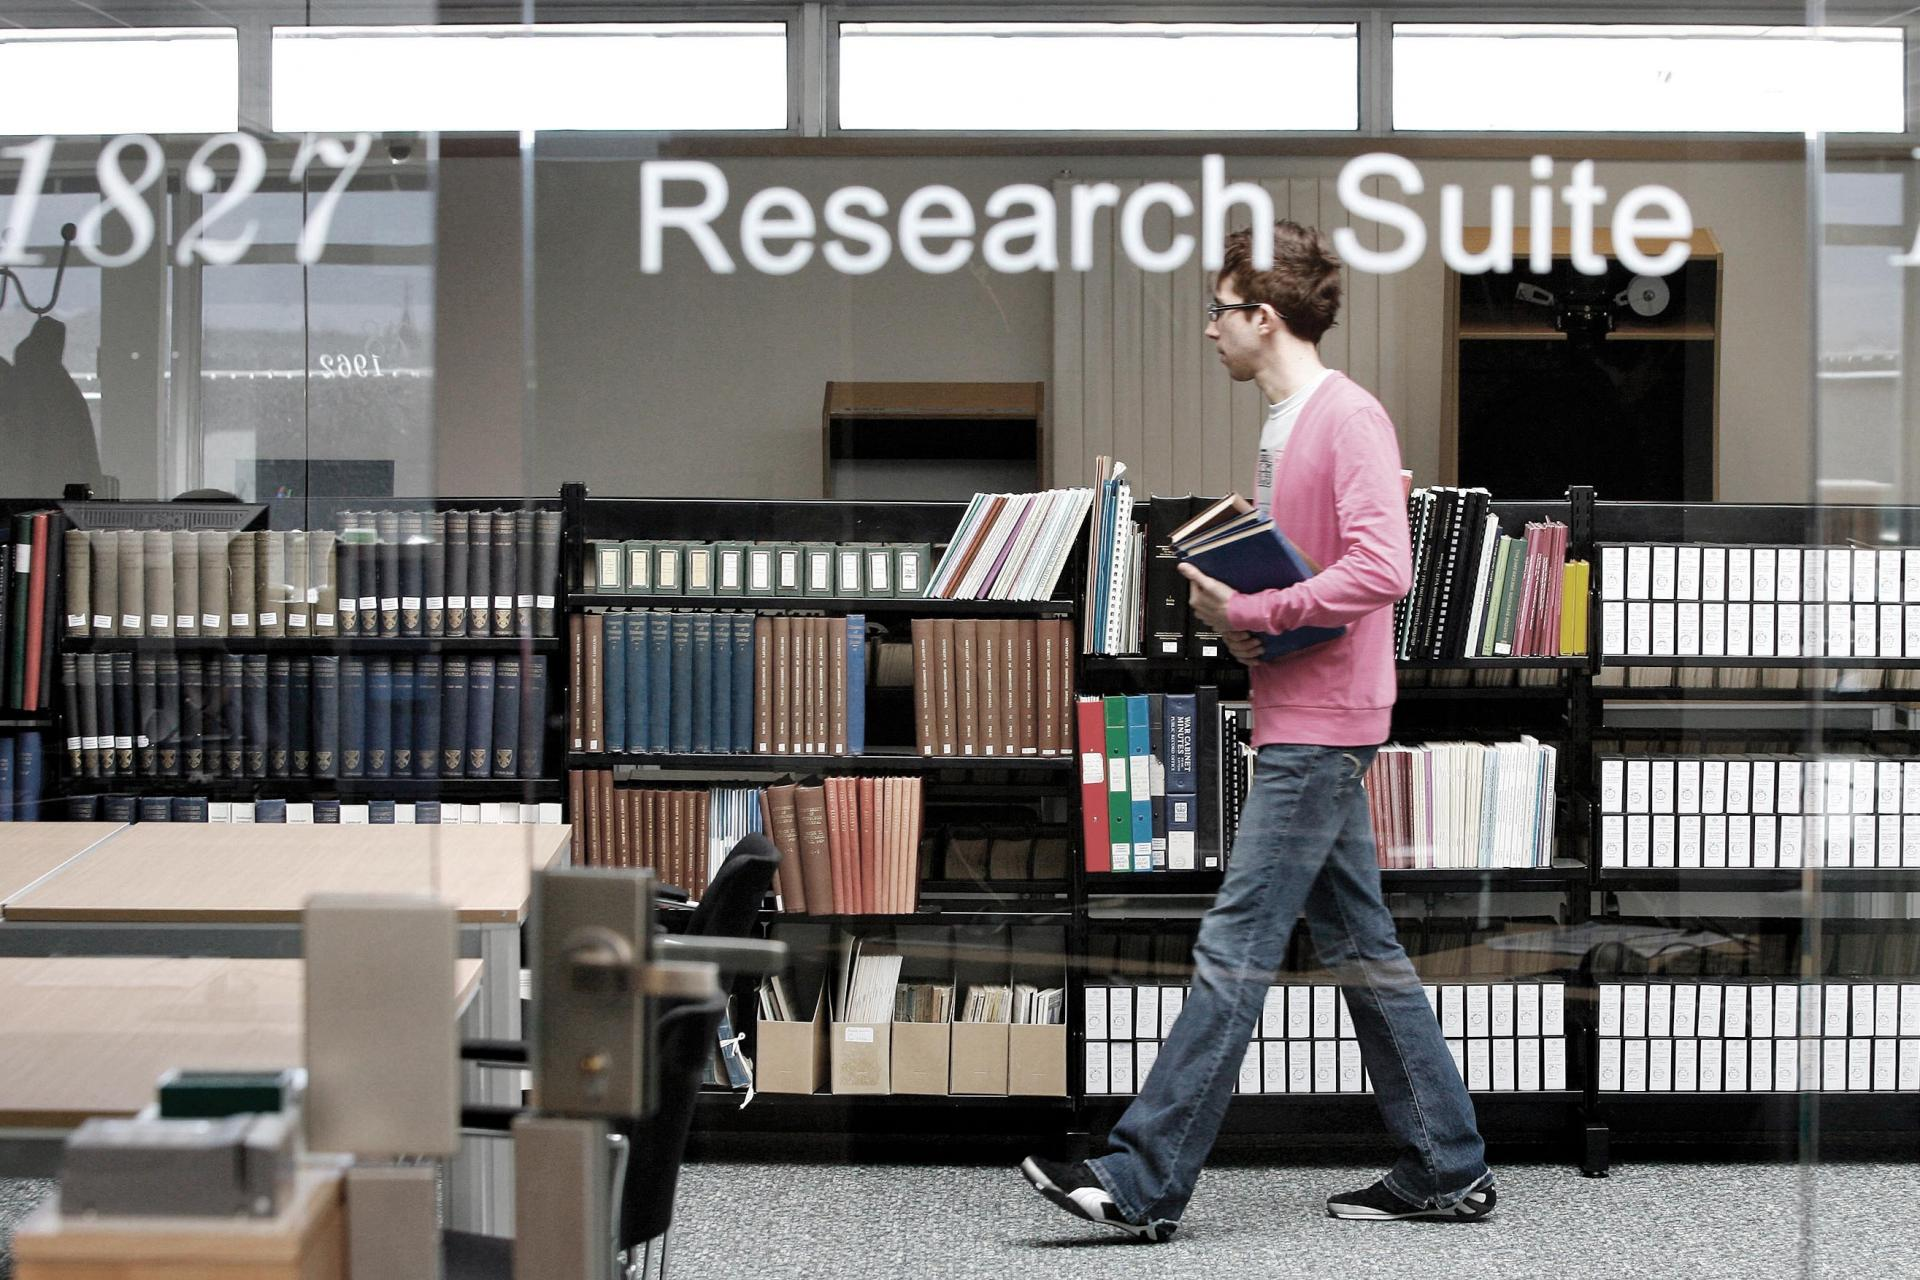 Main Library Research Suite